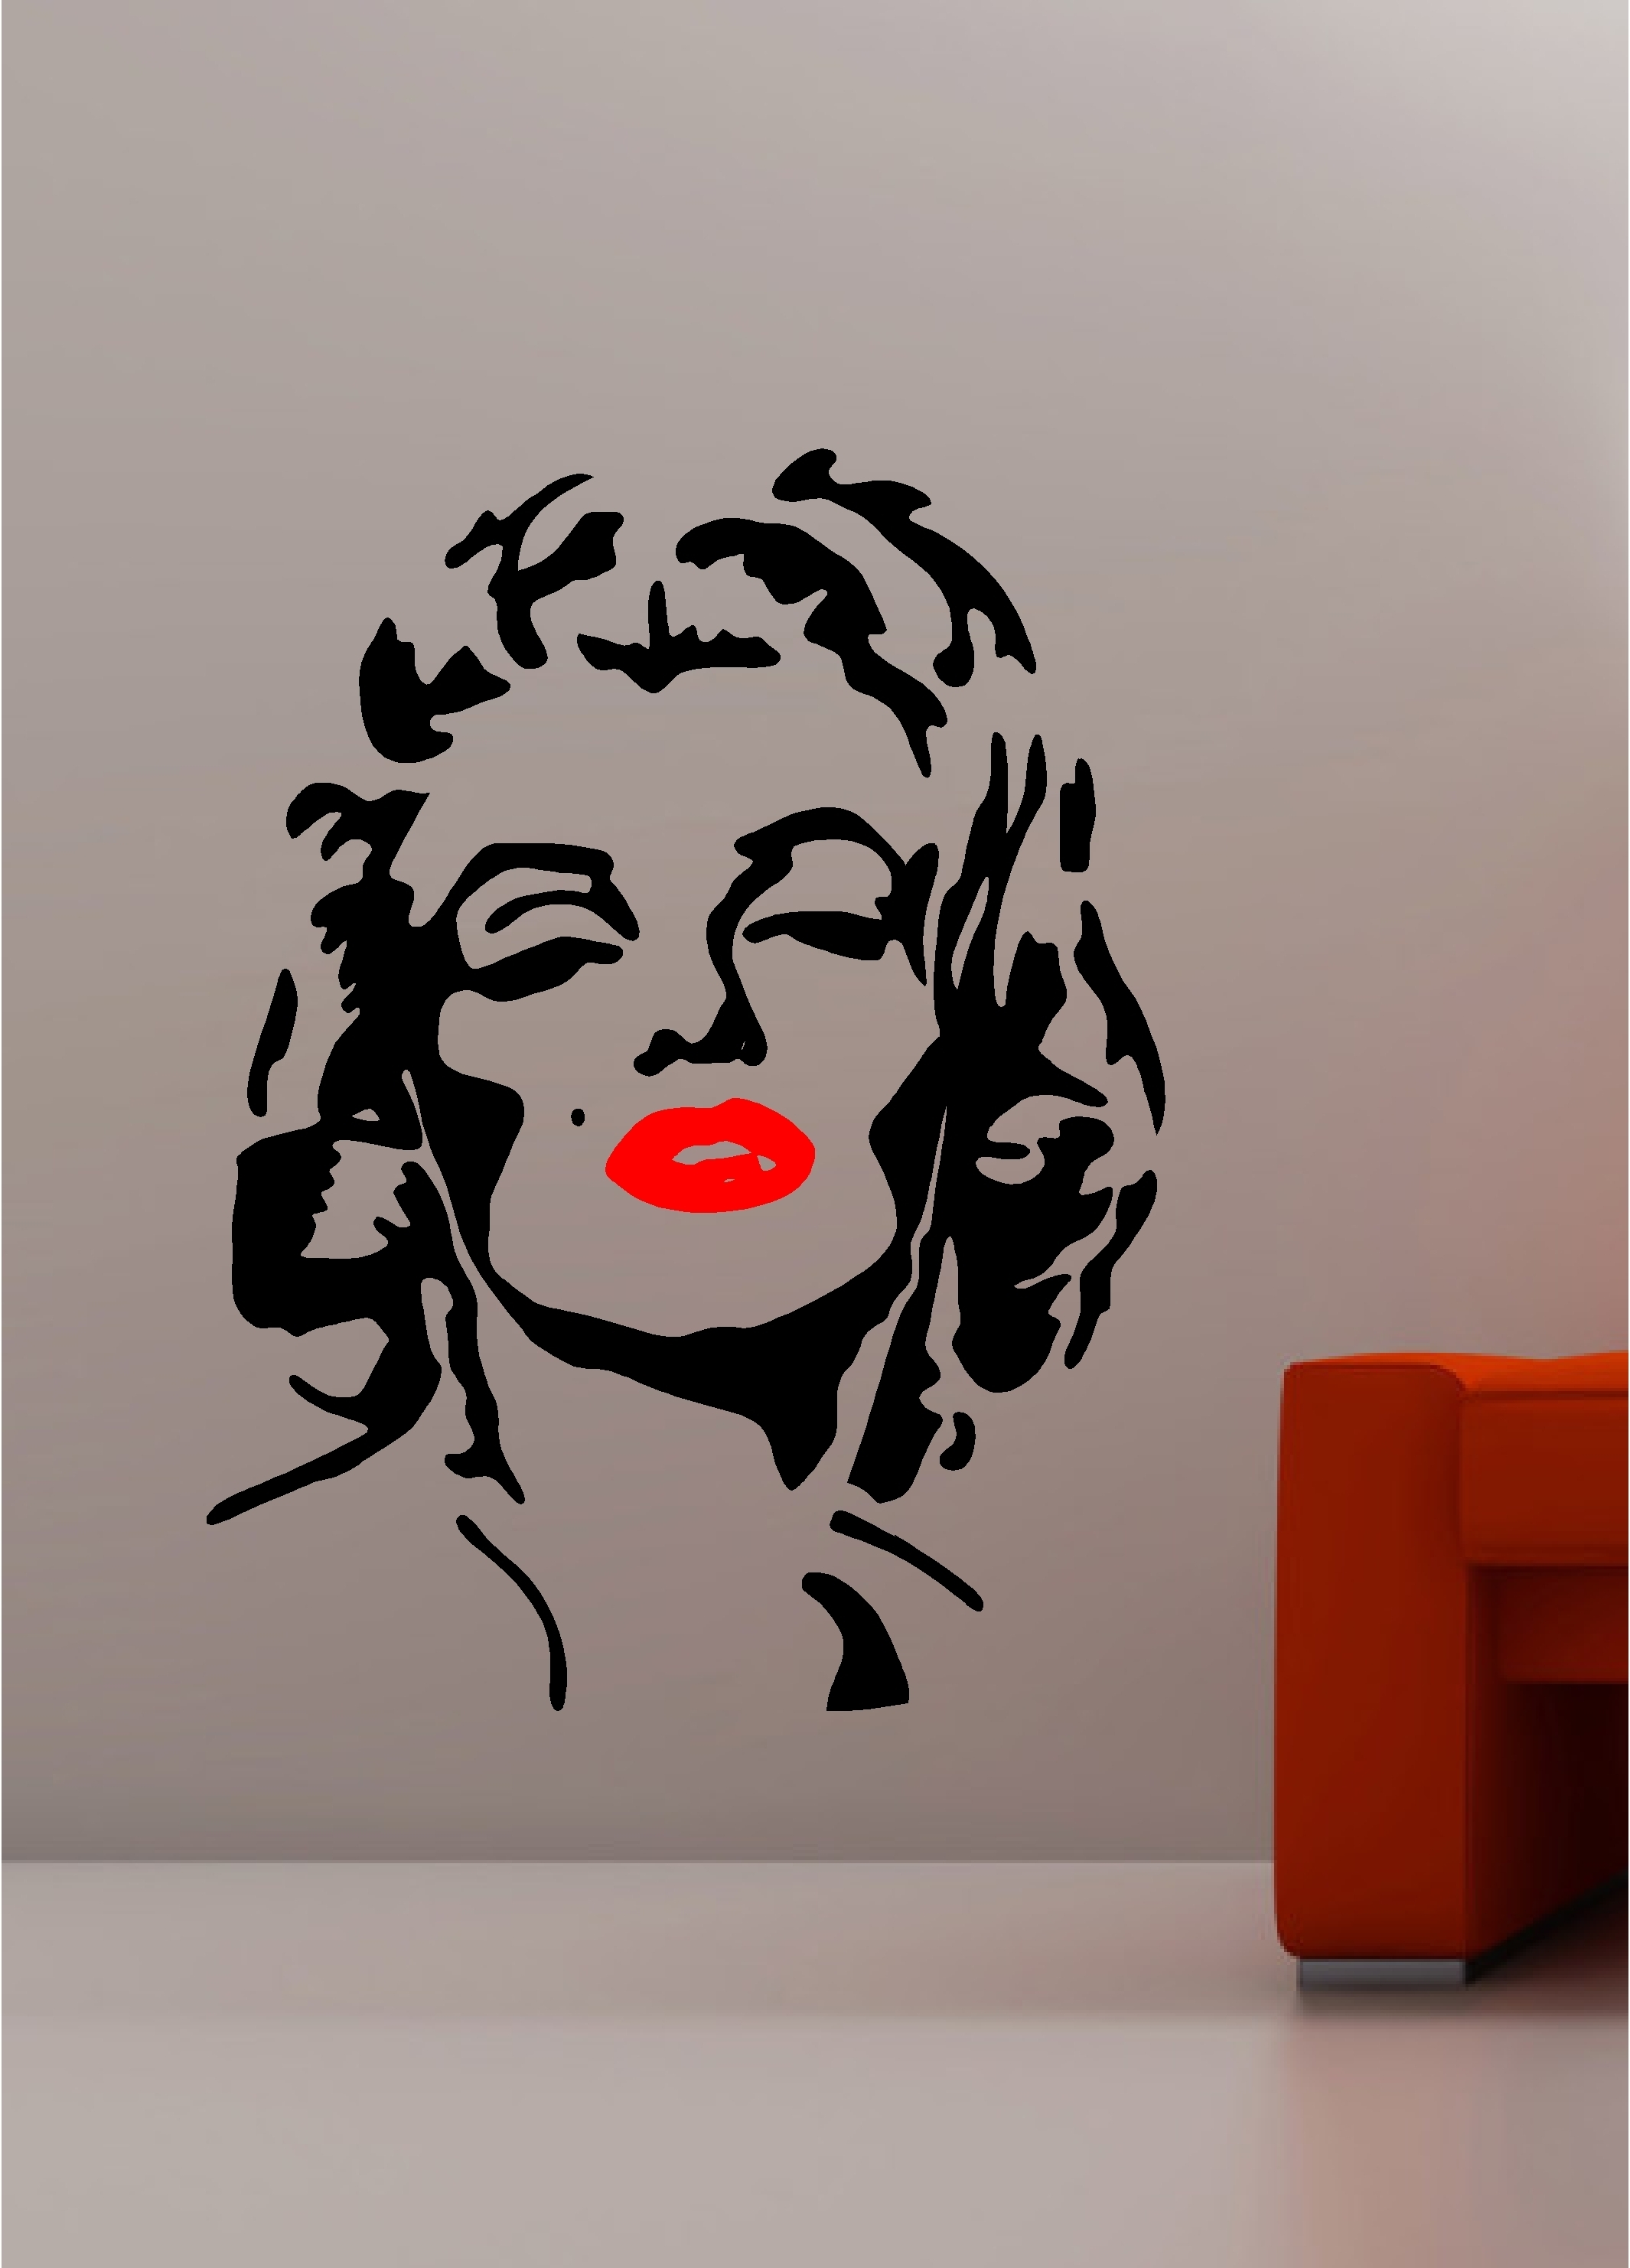 Marilyn Monroe Wall Art Throughout Recent Wall Art Designs: Marilyn Monroe Wall Art Marilyn Monroe Pop Art (View 6 of 15)